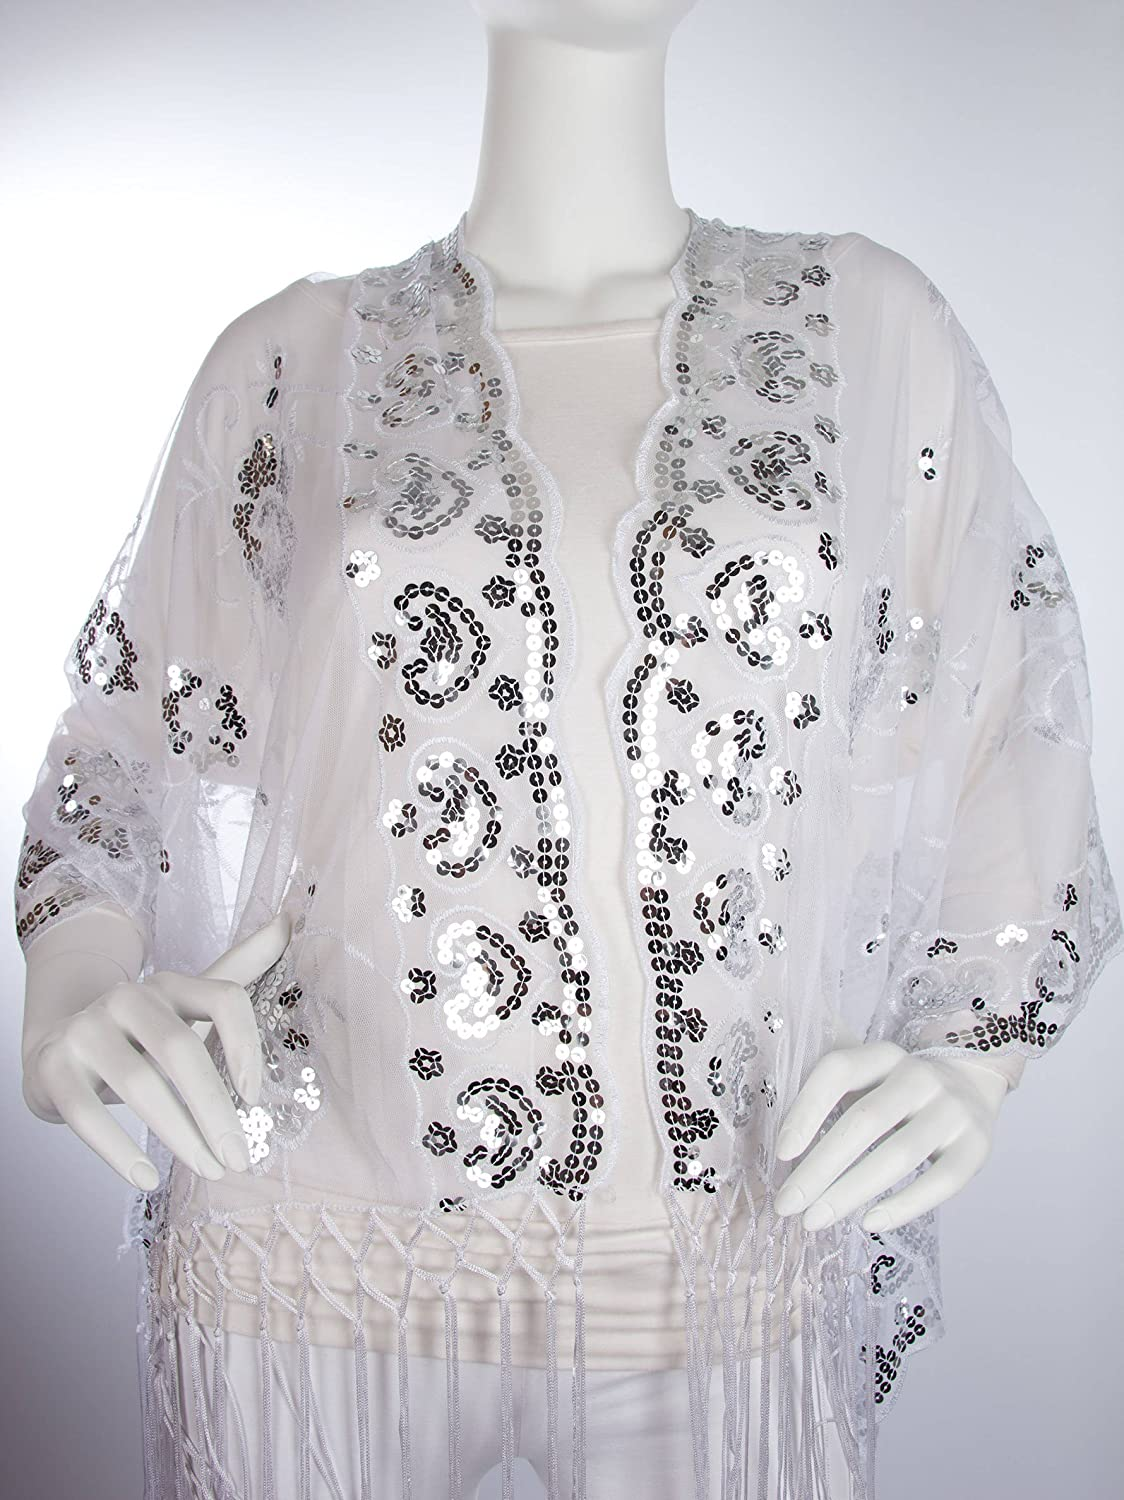 Vintage Inspired Scarves for Winter Madison Shawl Long Fringe Sequin Evening Wrap $16.95 AT vintagedancer.com